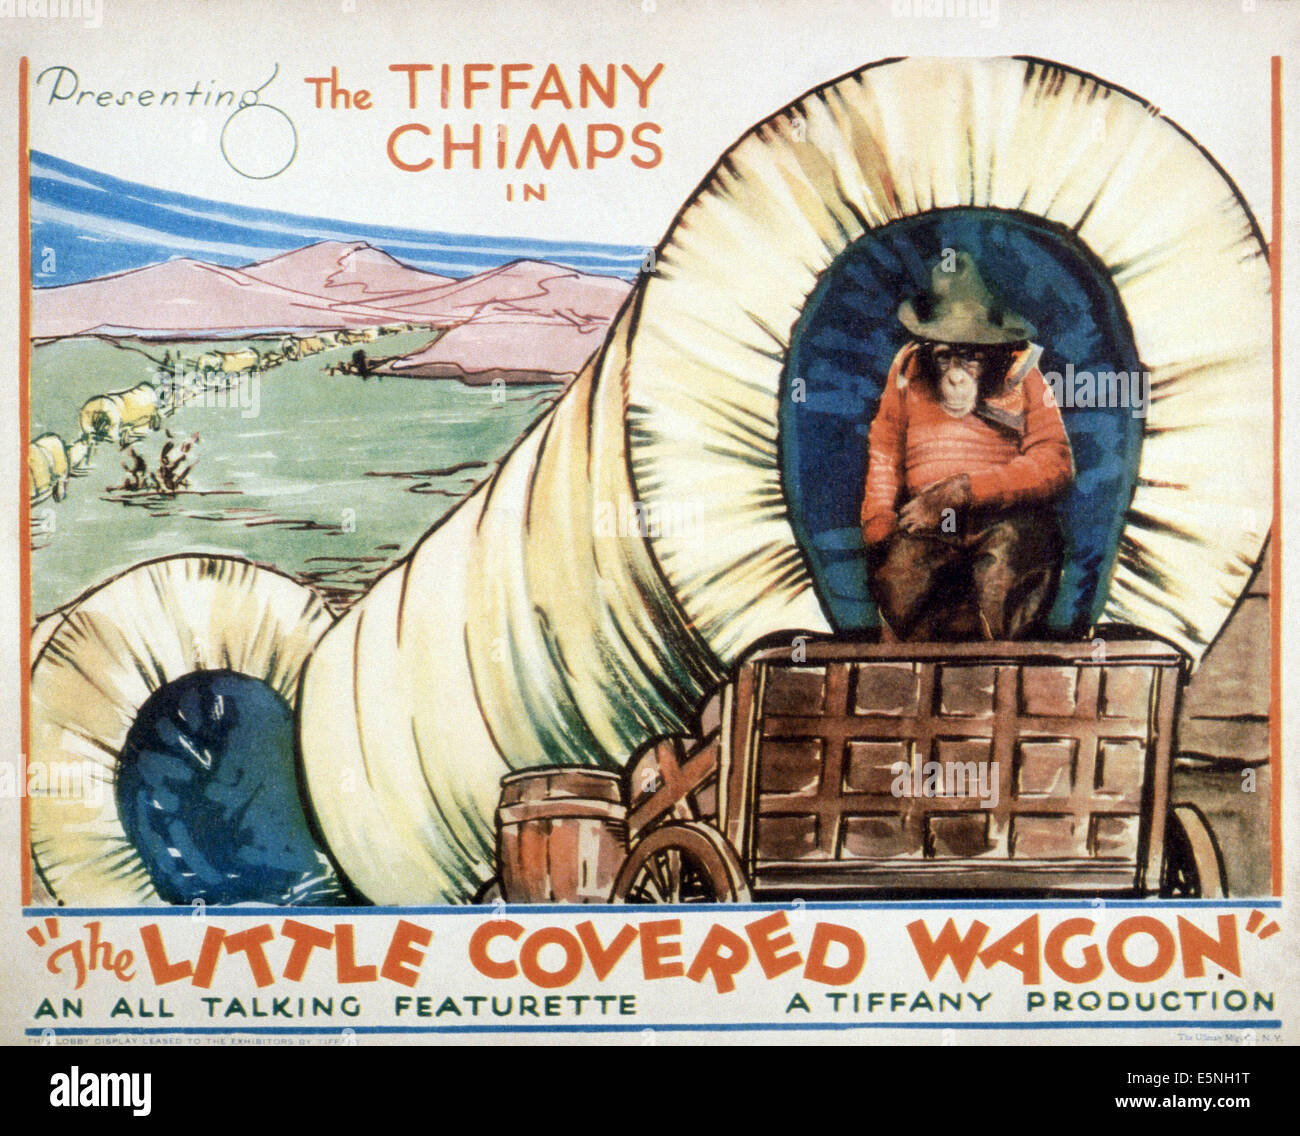 THE LITTLE COVERED WAGON, ca. 1930 Stock Photo